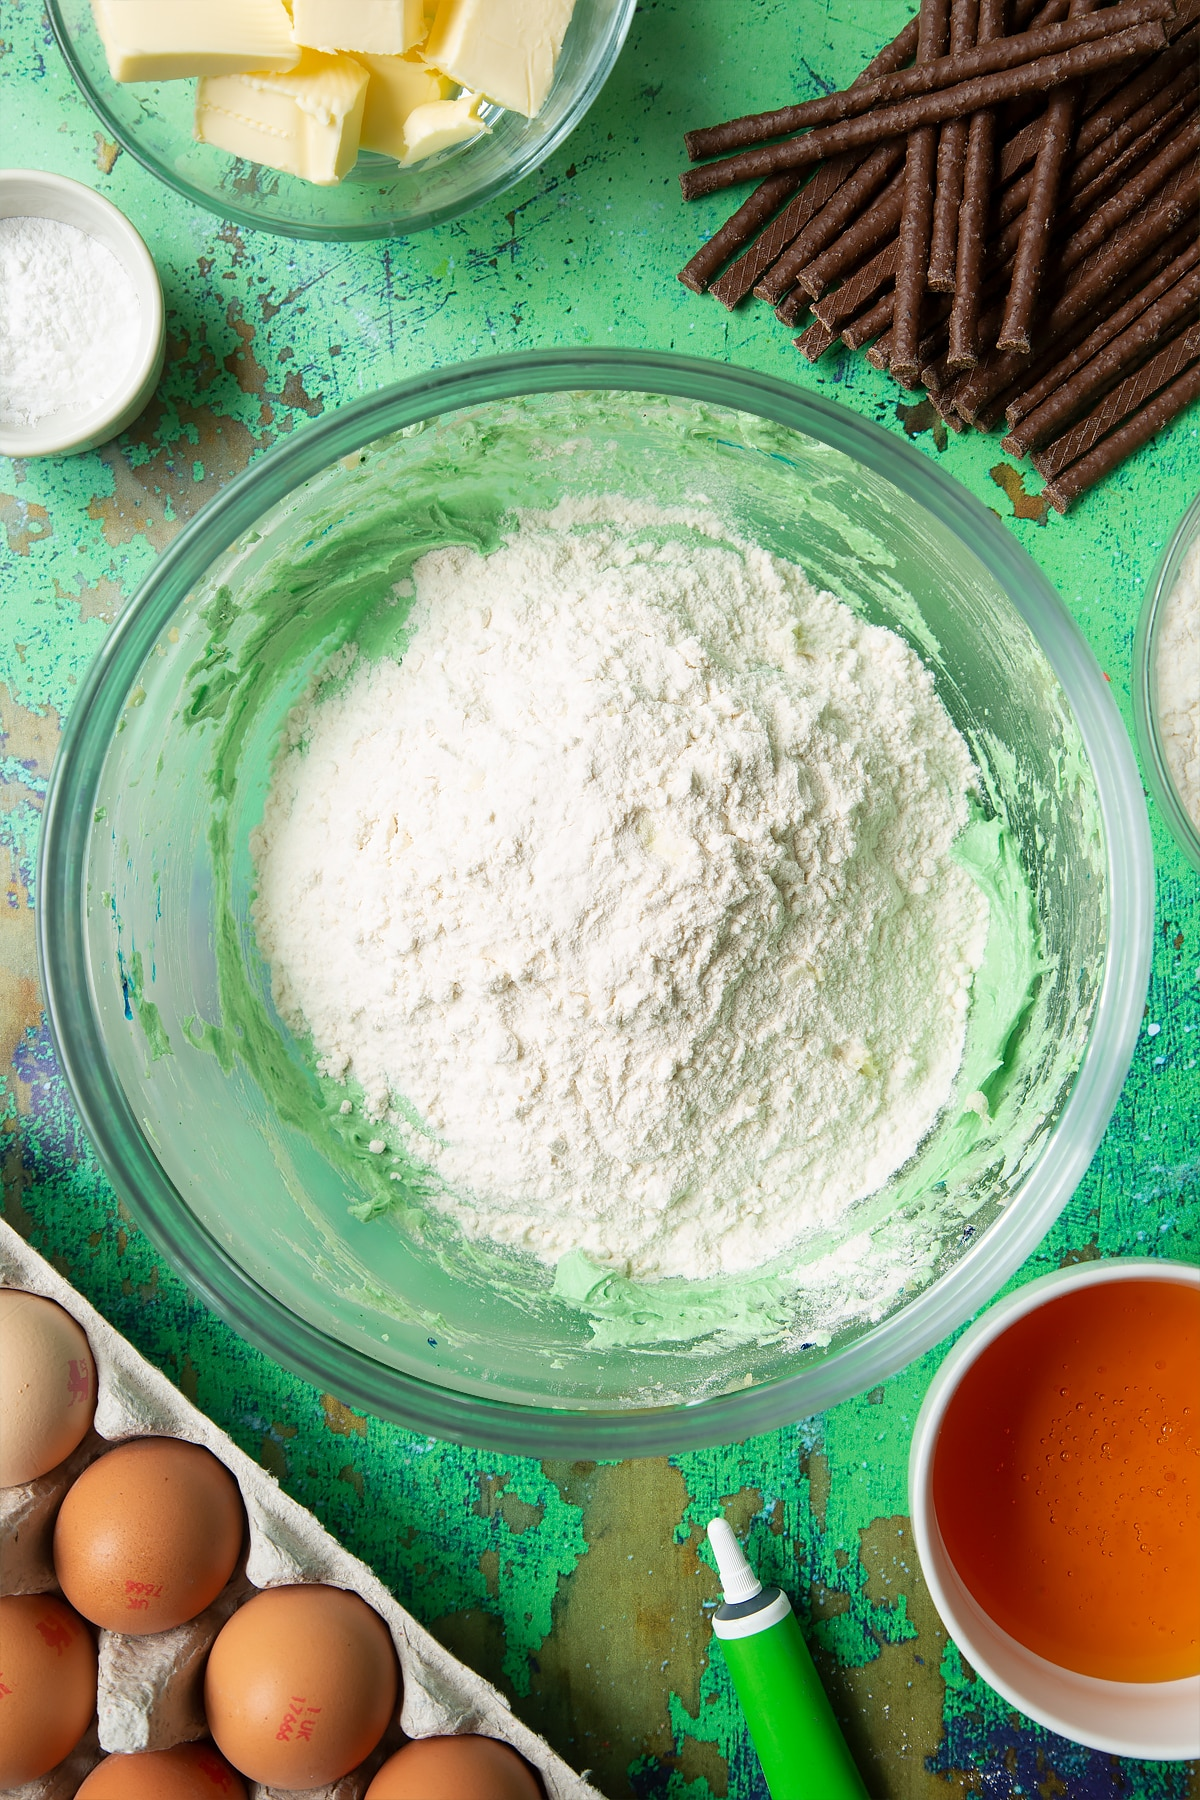 Creamed butter, sugar, eggs and green food colouring topped with flour in a mixing bowl. Ingredients to make Matchmaker cookies surround the bowl.